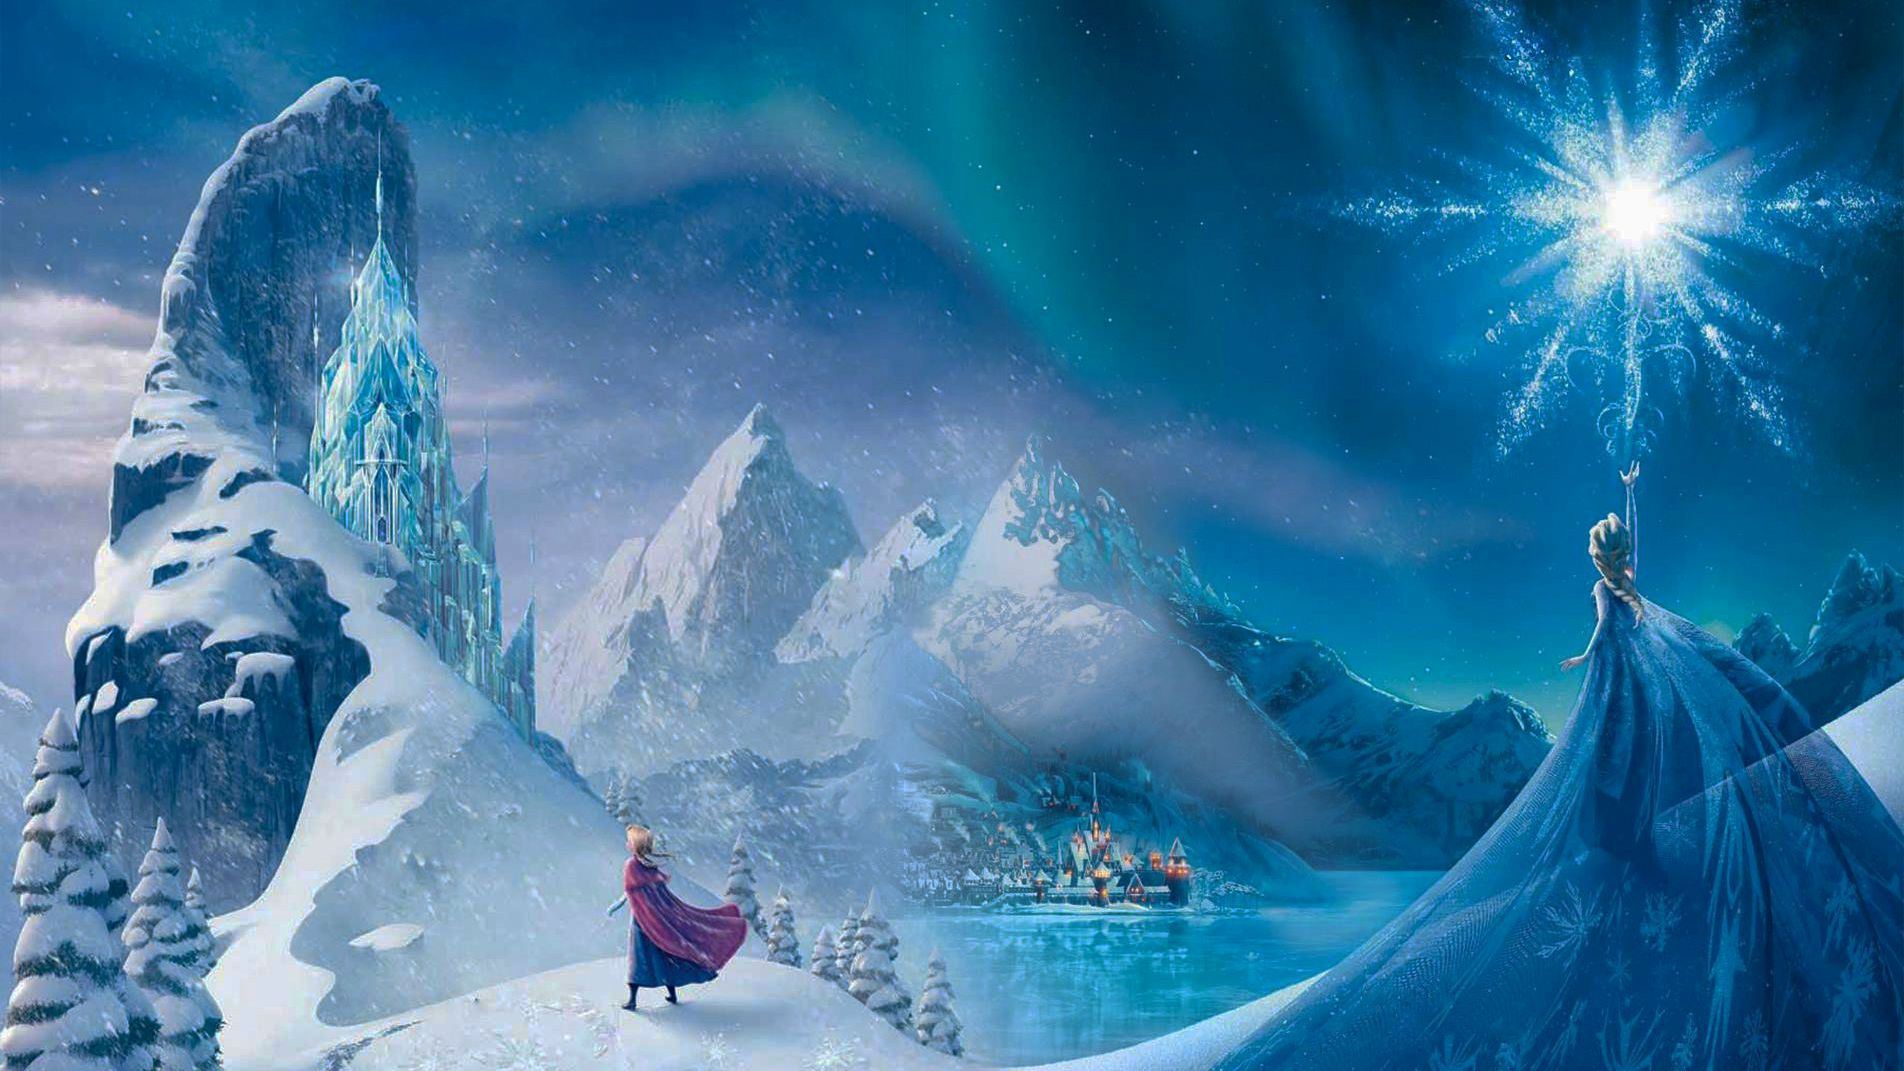 Disney Frozen Wallpaper HD 1904x1071